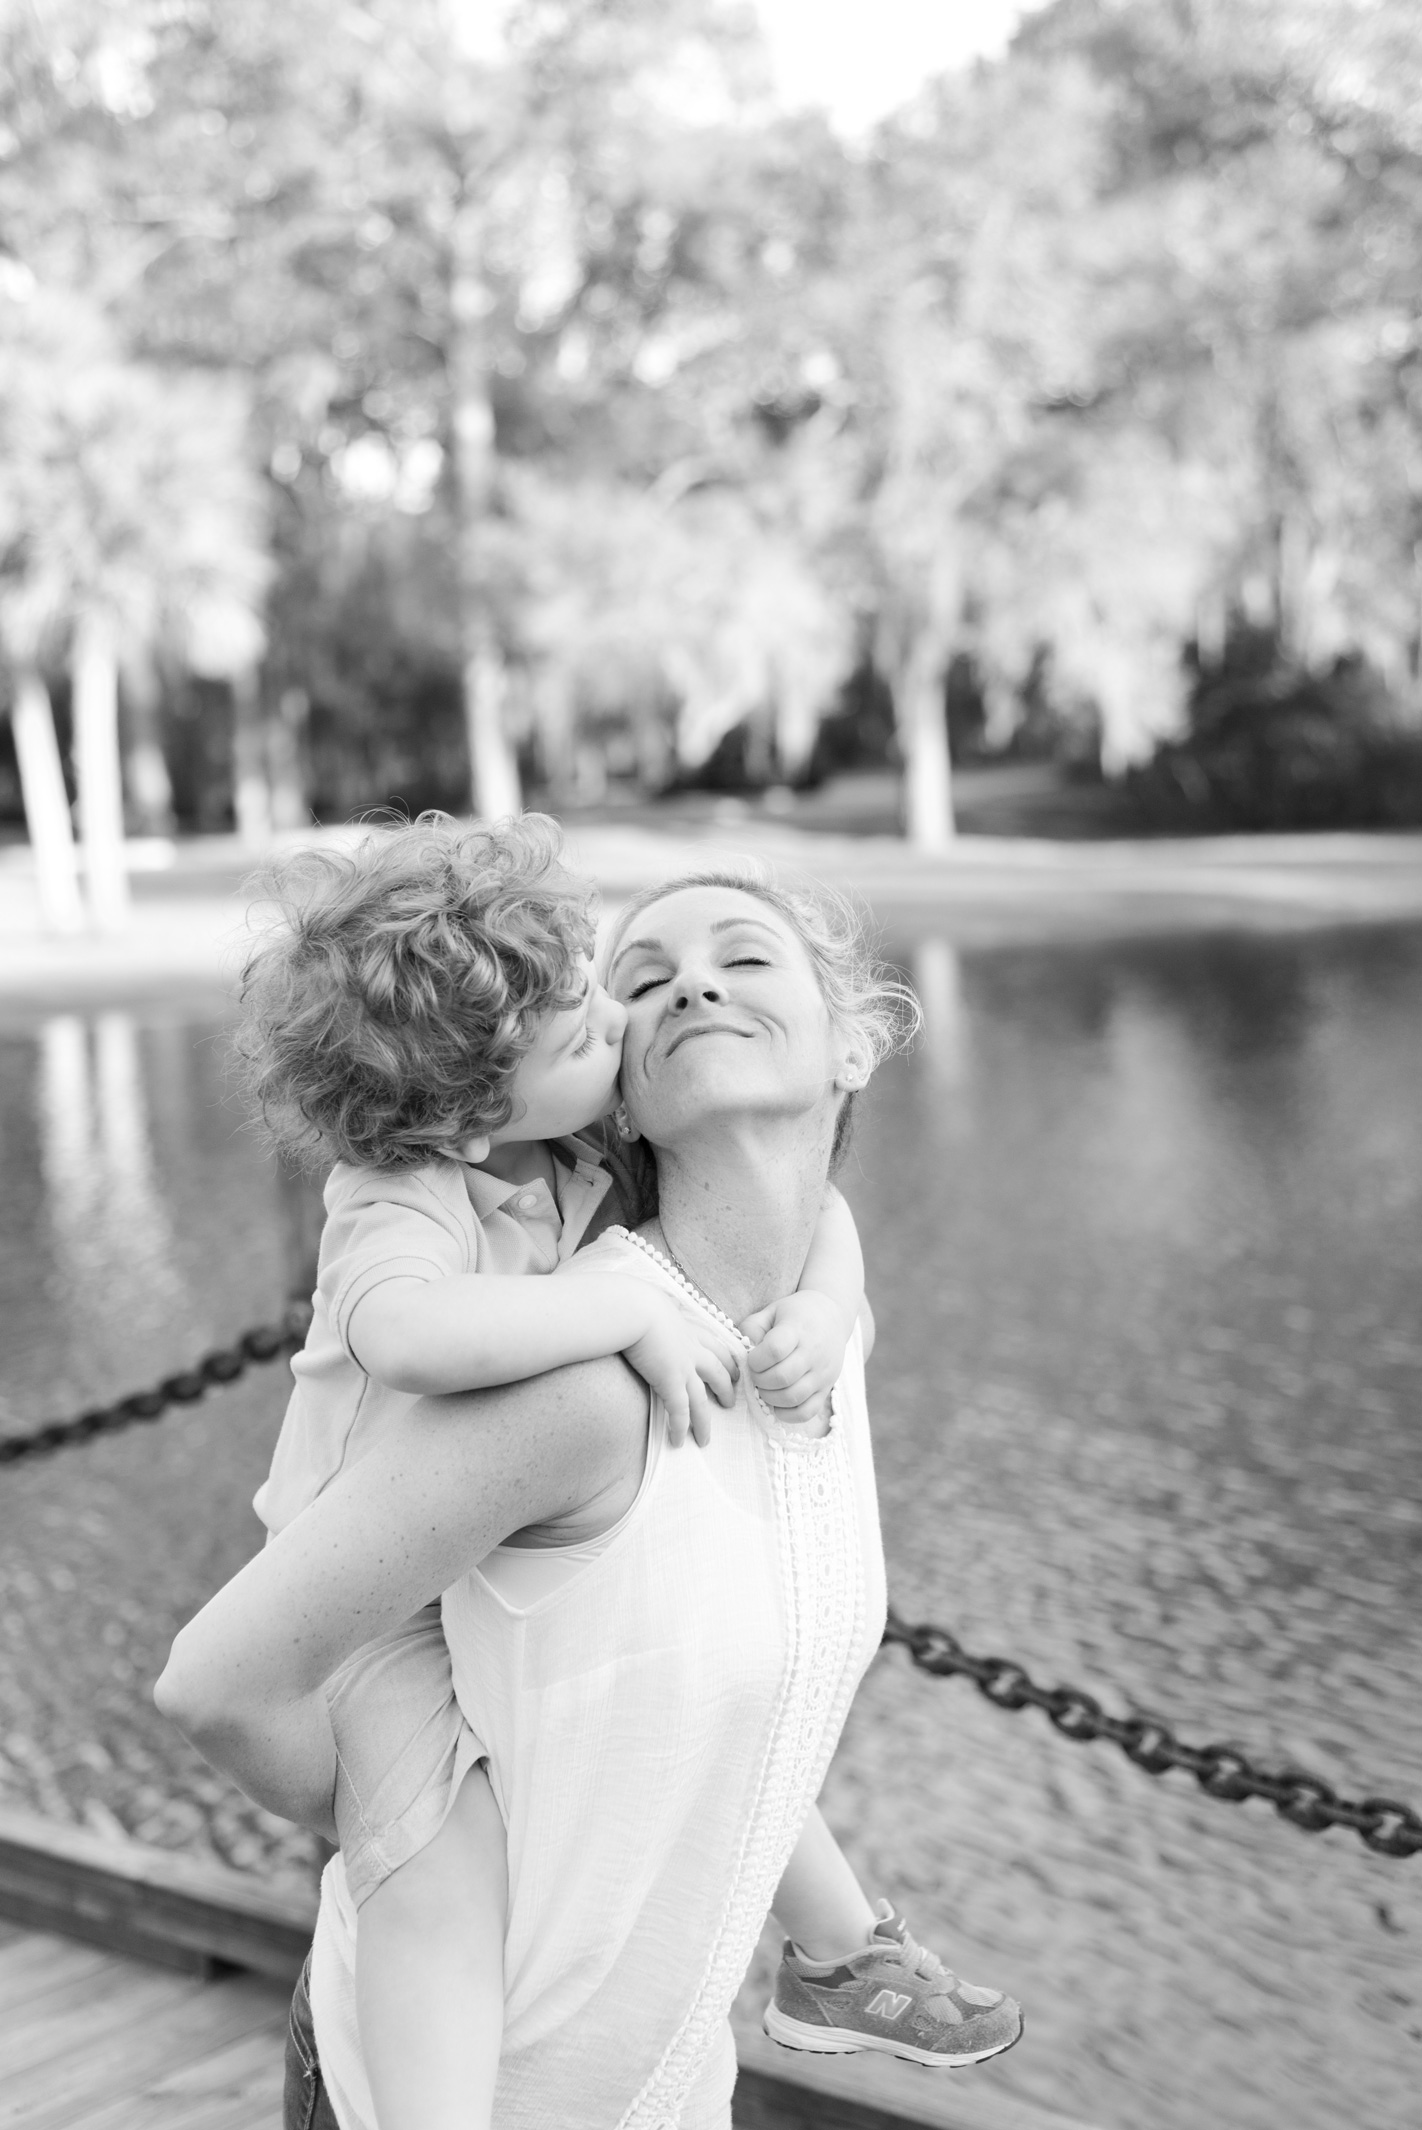 Young boy kissing his mother on the cheek at The Landings on Skidaway Island in Savannah, GA. Photographed by Savannah Family Photographer Kristen M. Brown, Samba to the Sea Photography.